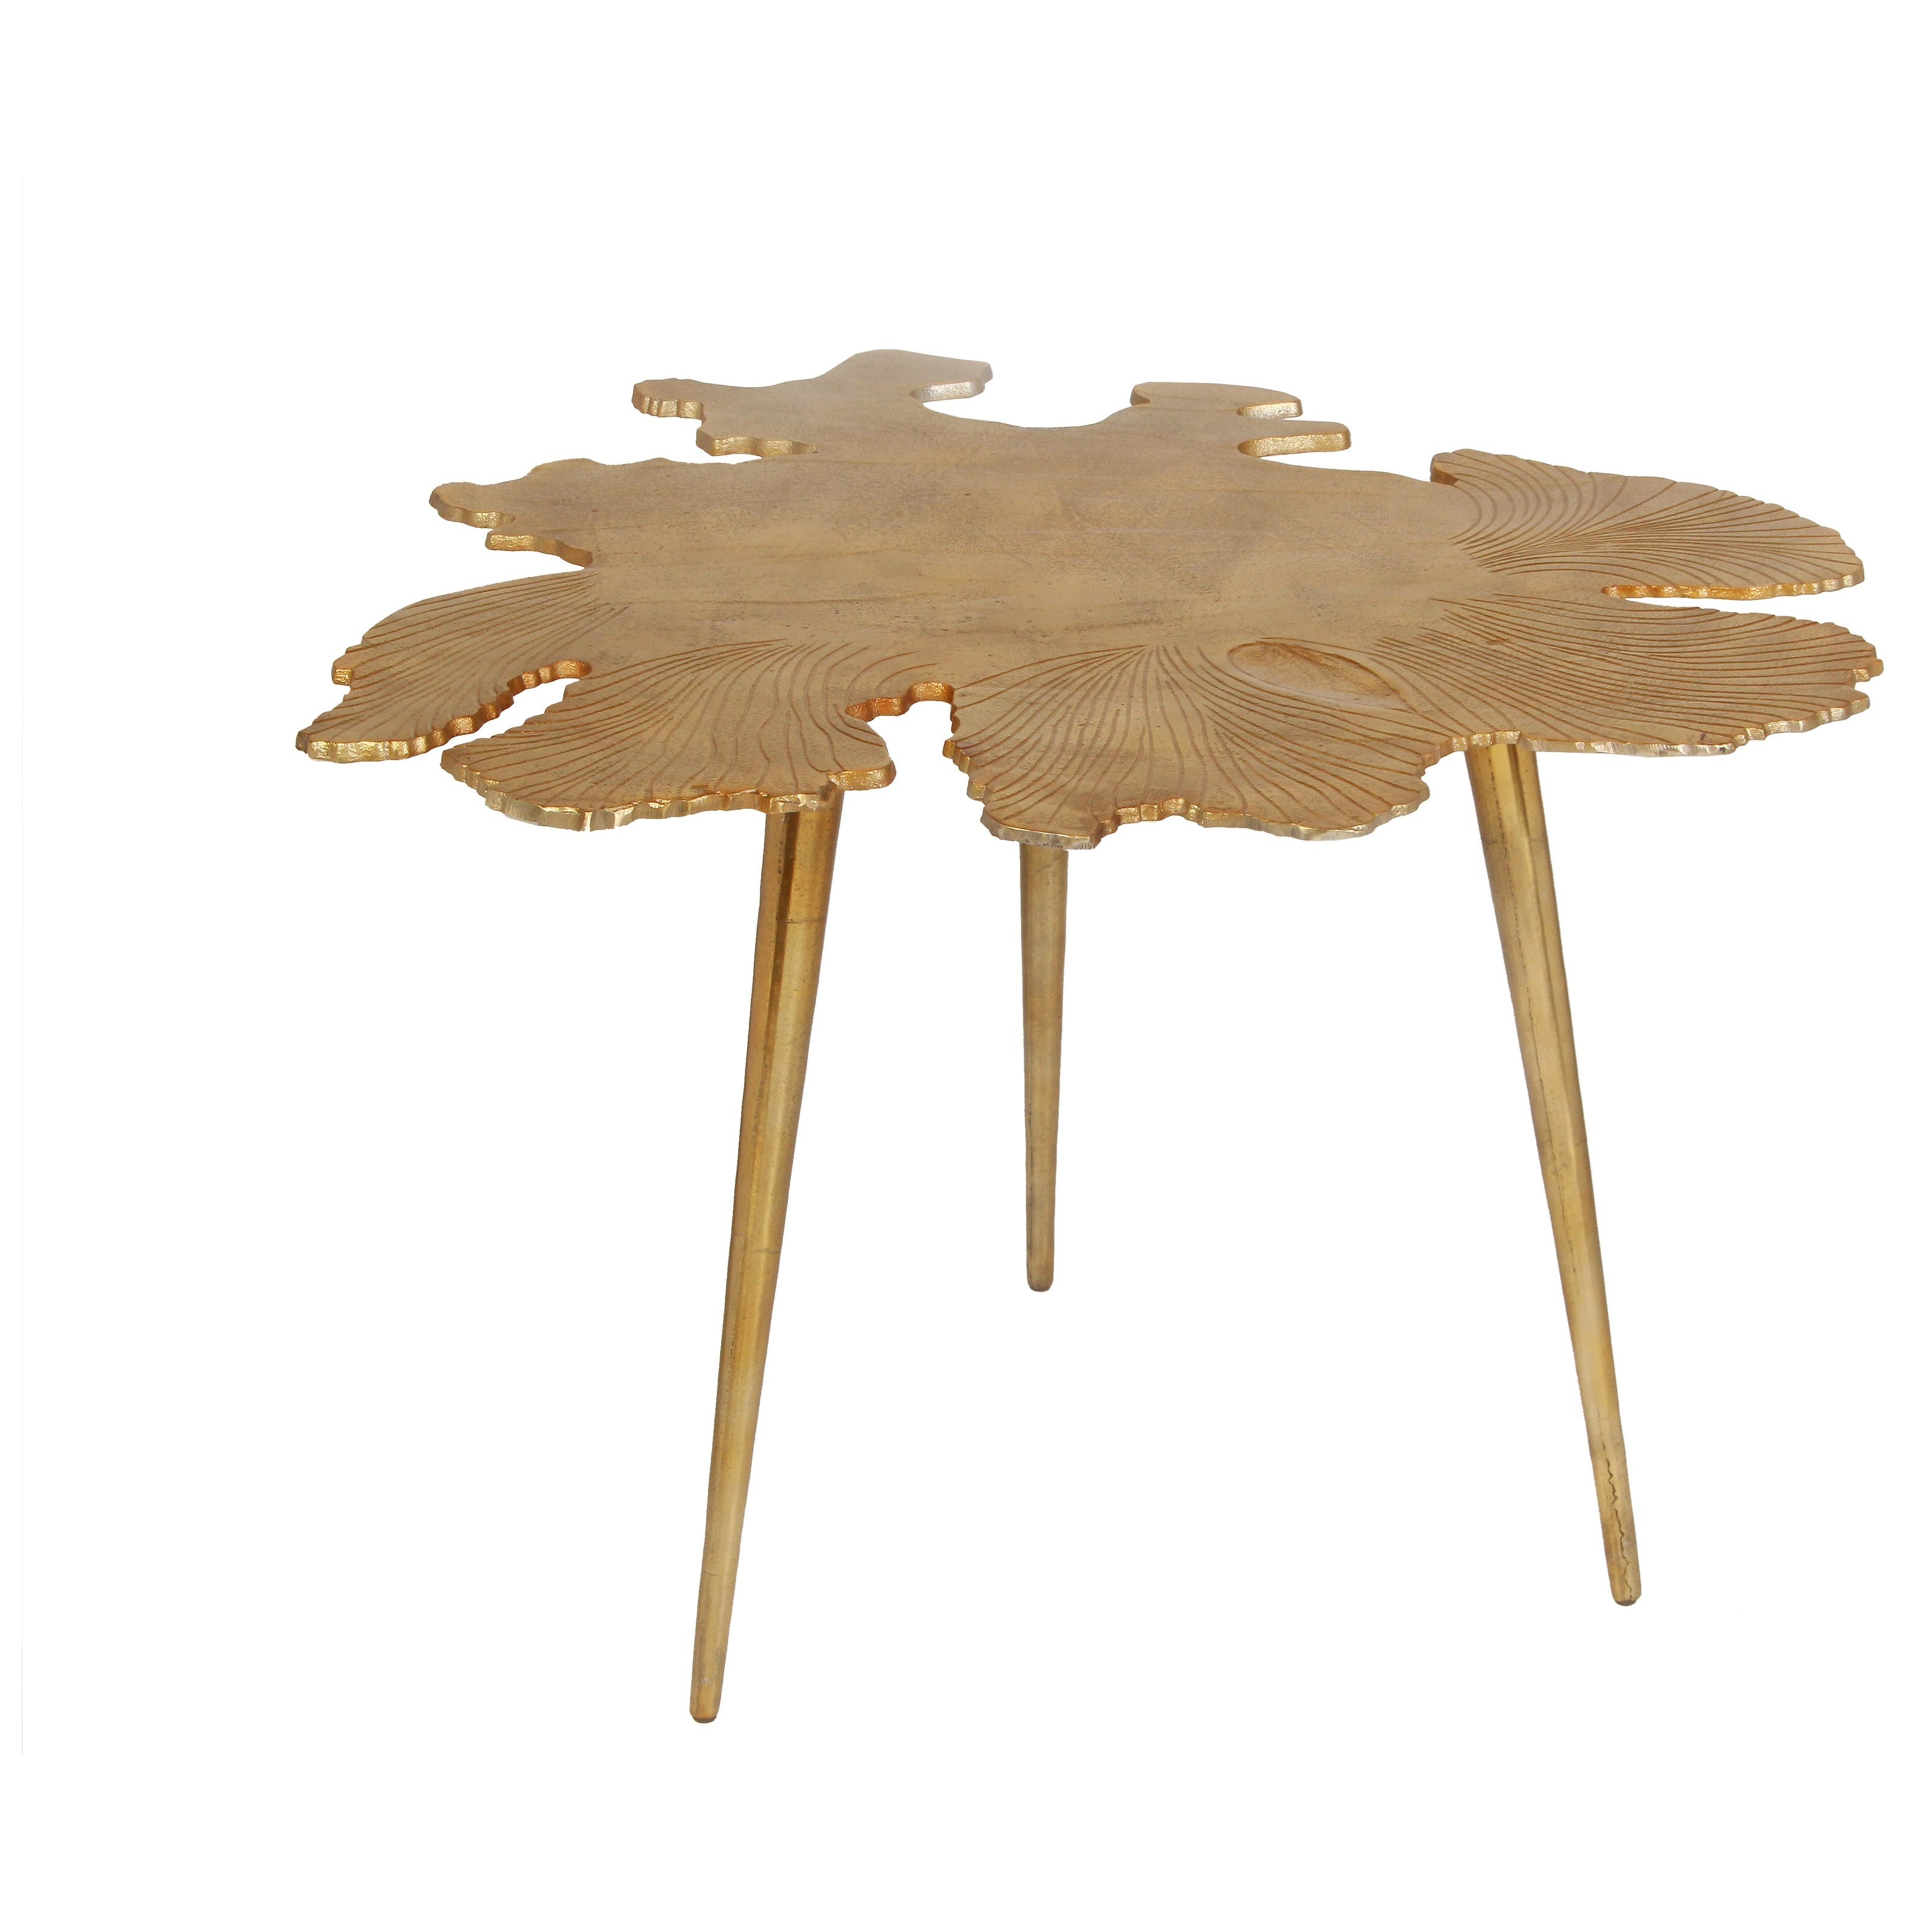 Moe's Home Collection Amoeba   Side Table Gold - Item Number: FI-1006-32